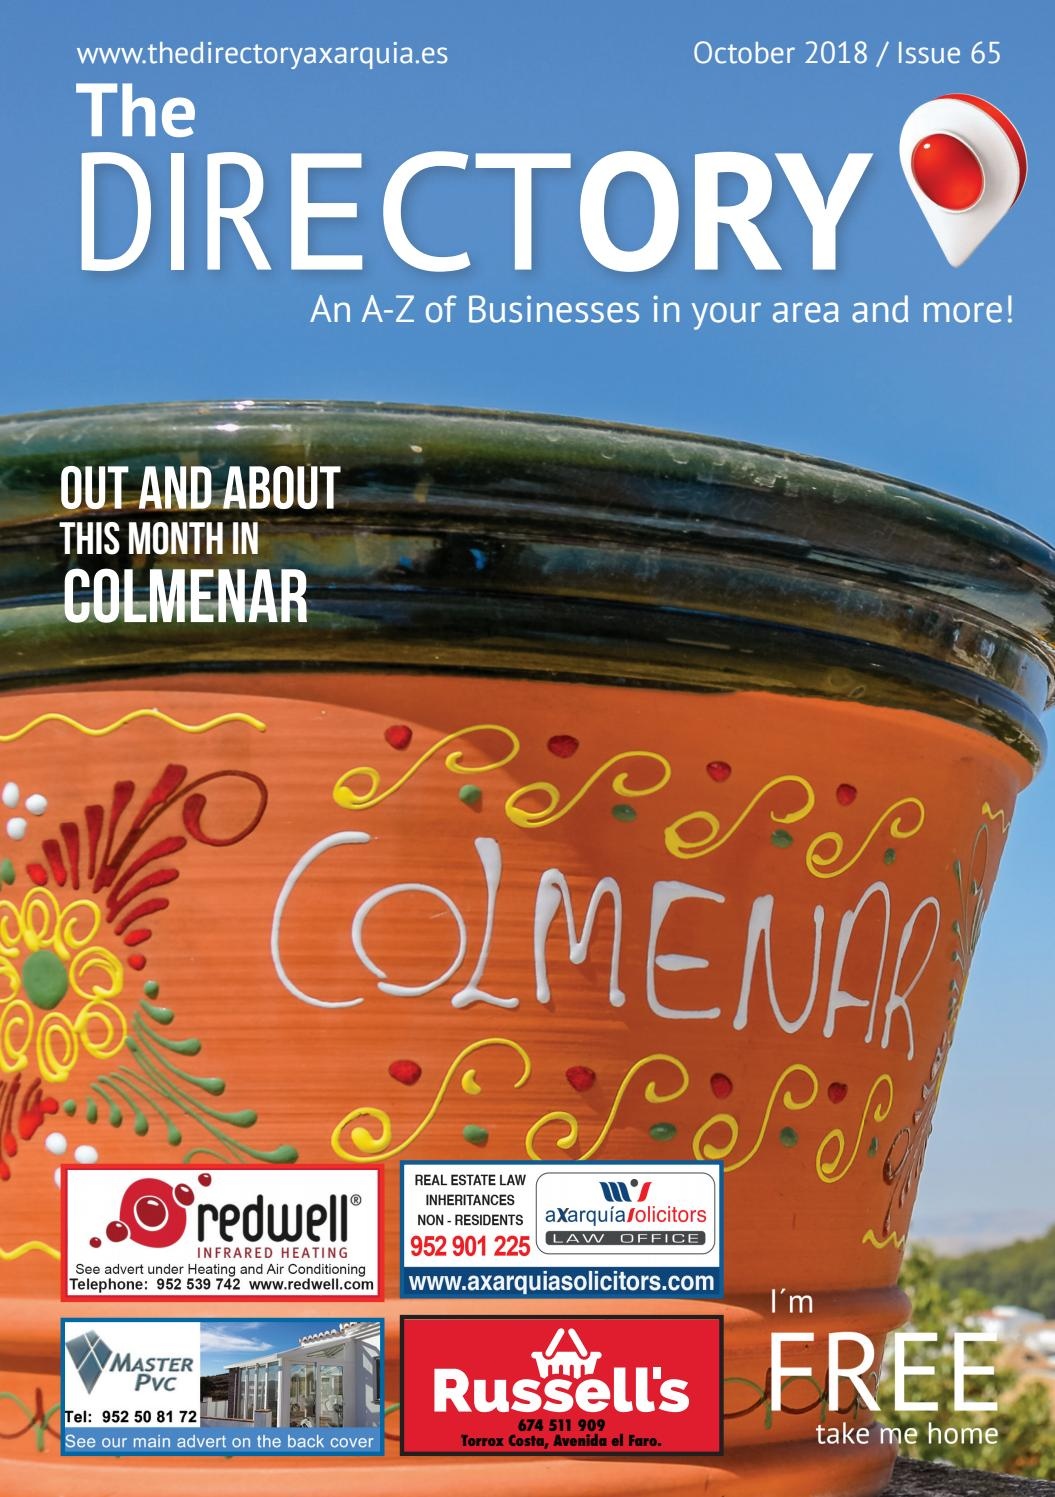 The Directory Magazine October 2018 Issue 65 By The